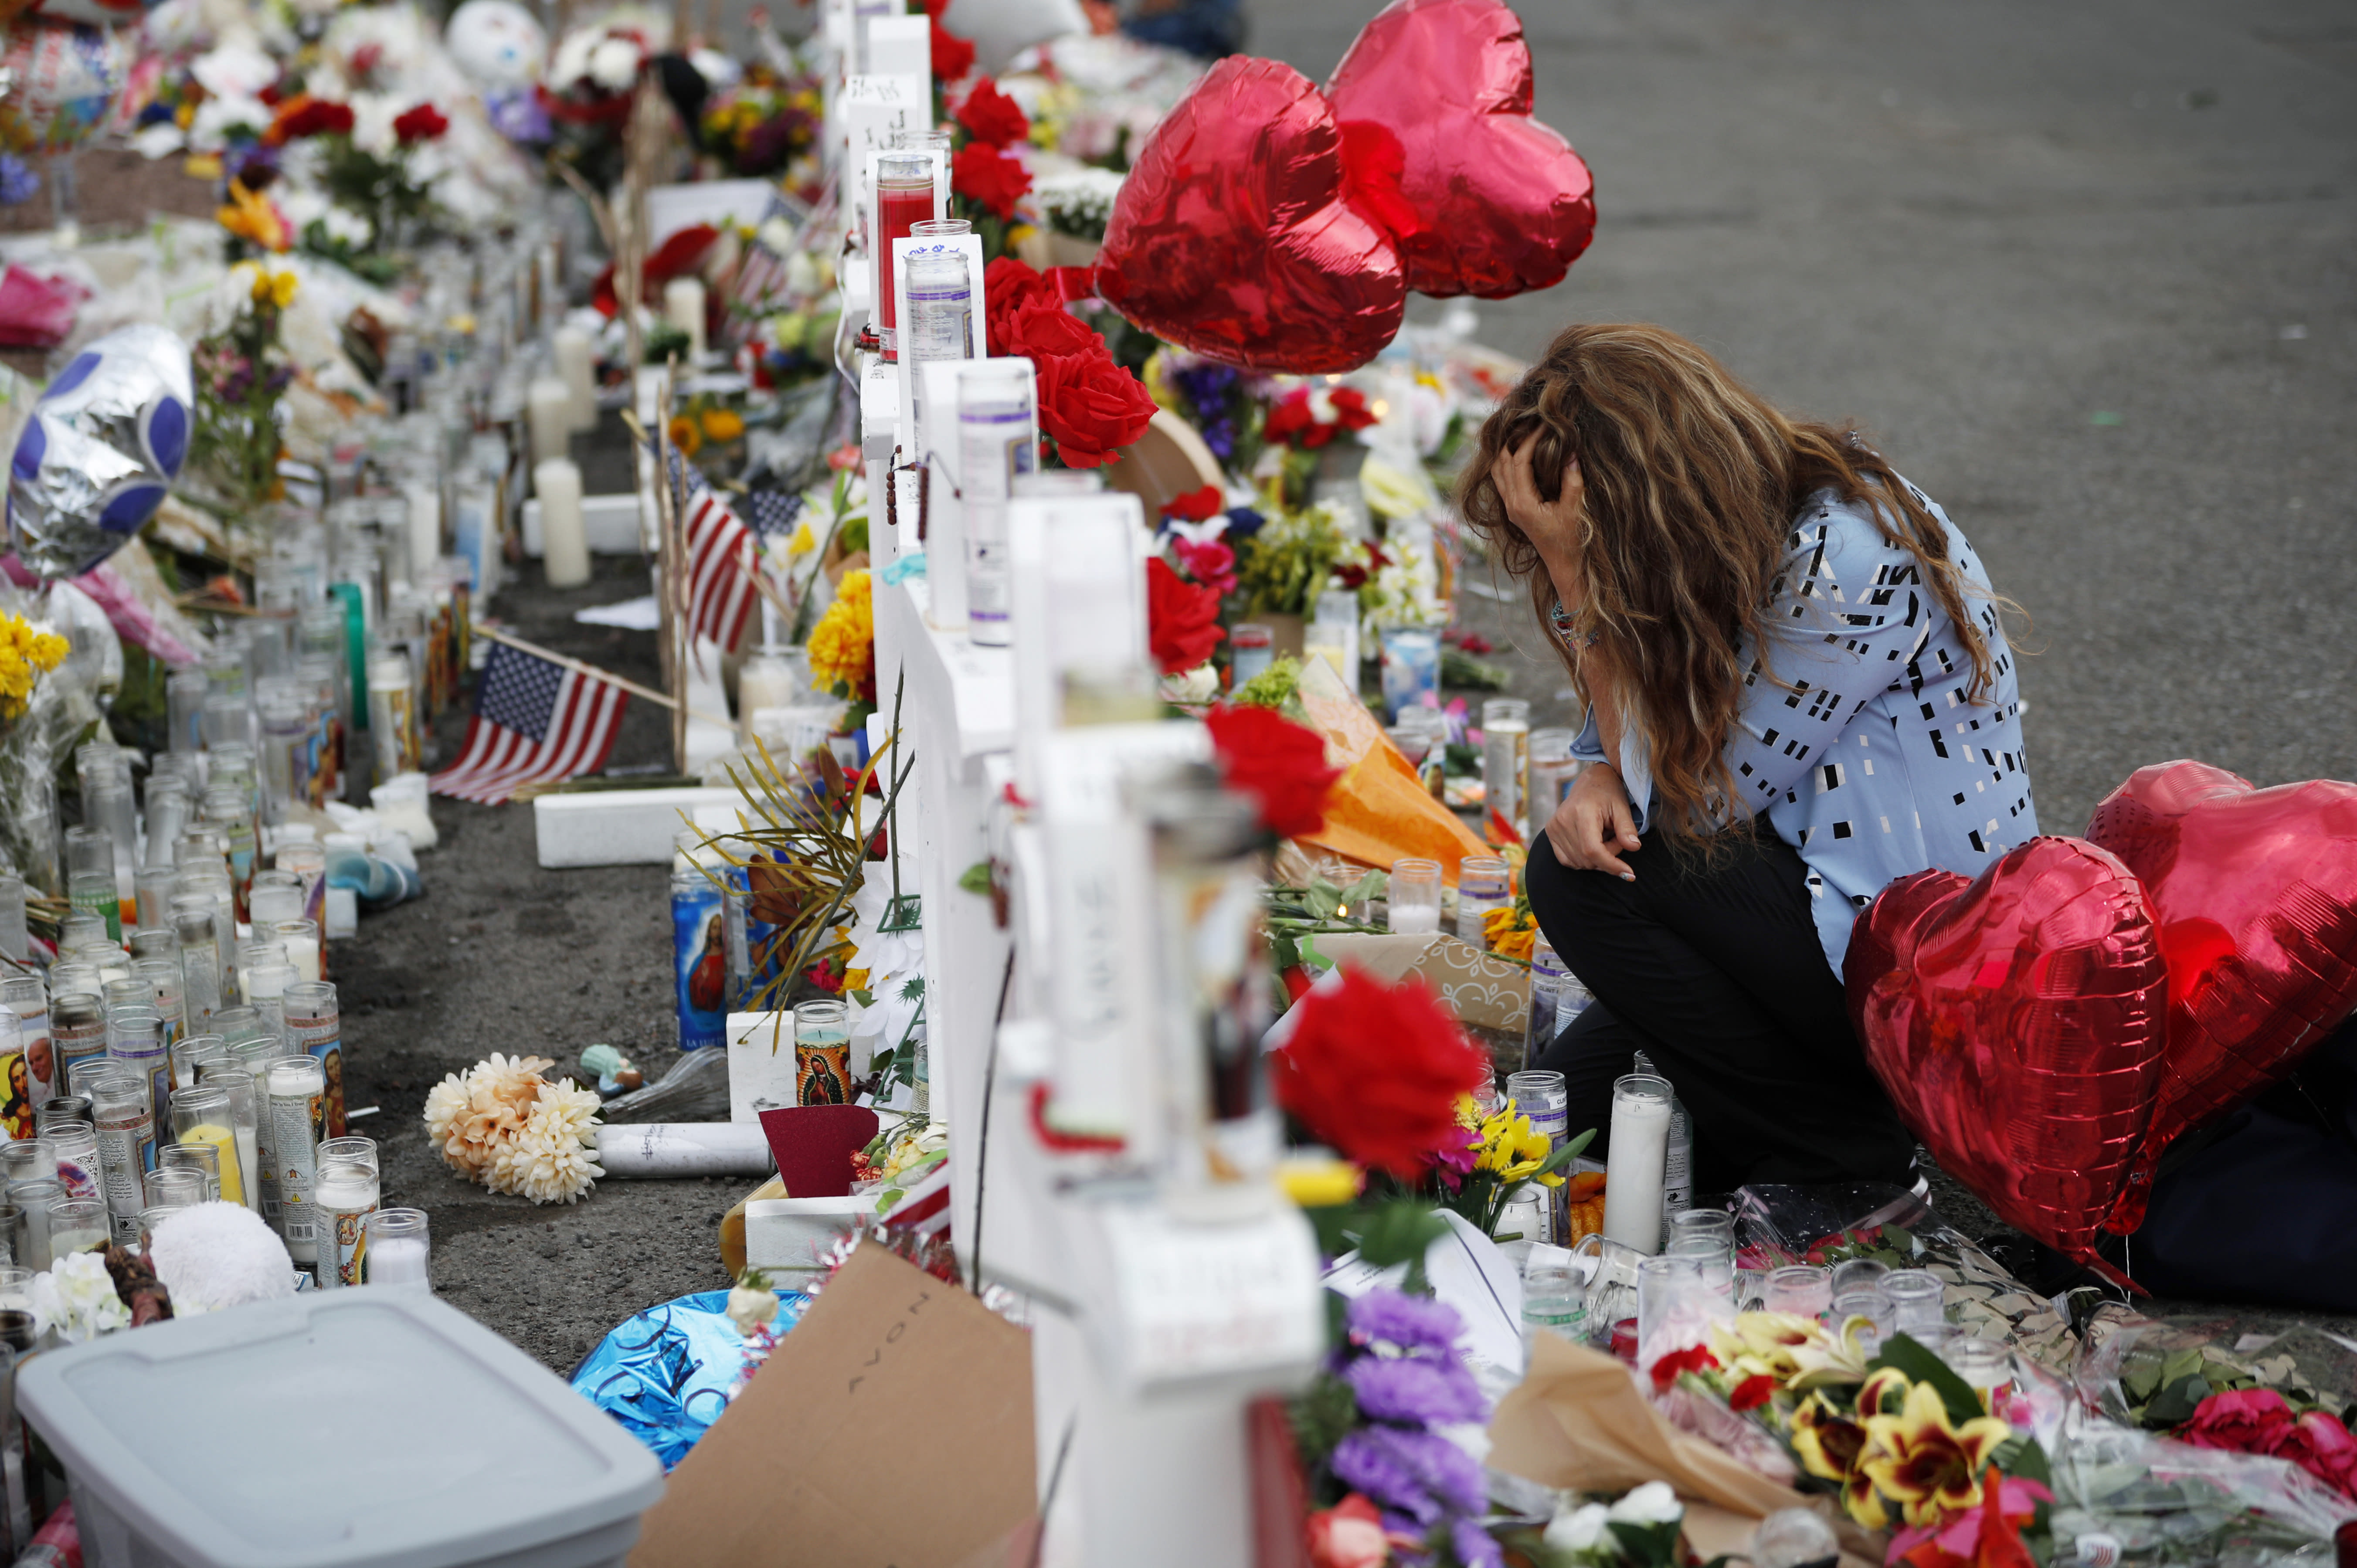 Angie Cepeda Scene couples, parents, friends among the dead in shootings